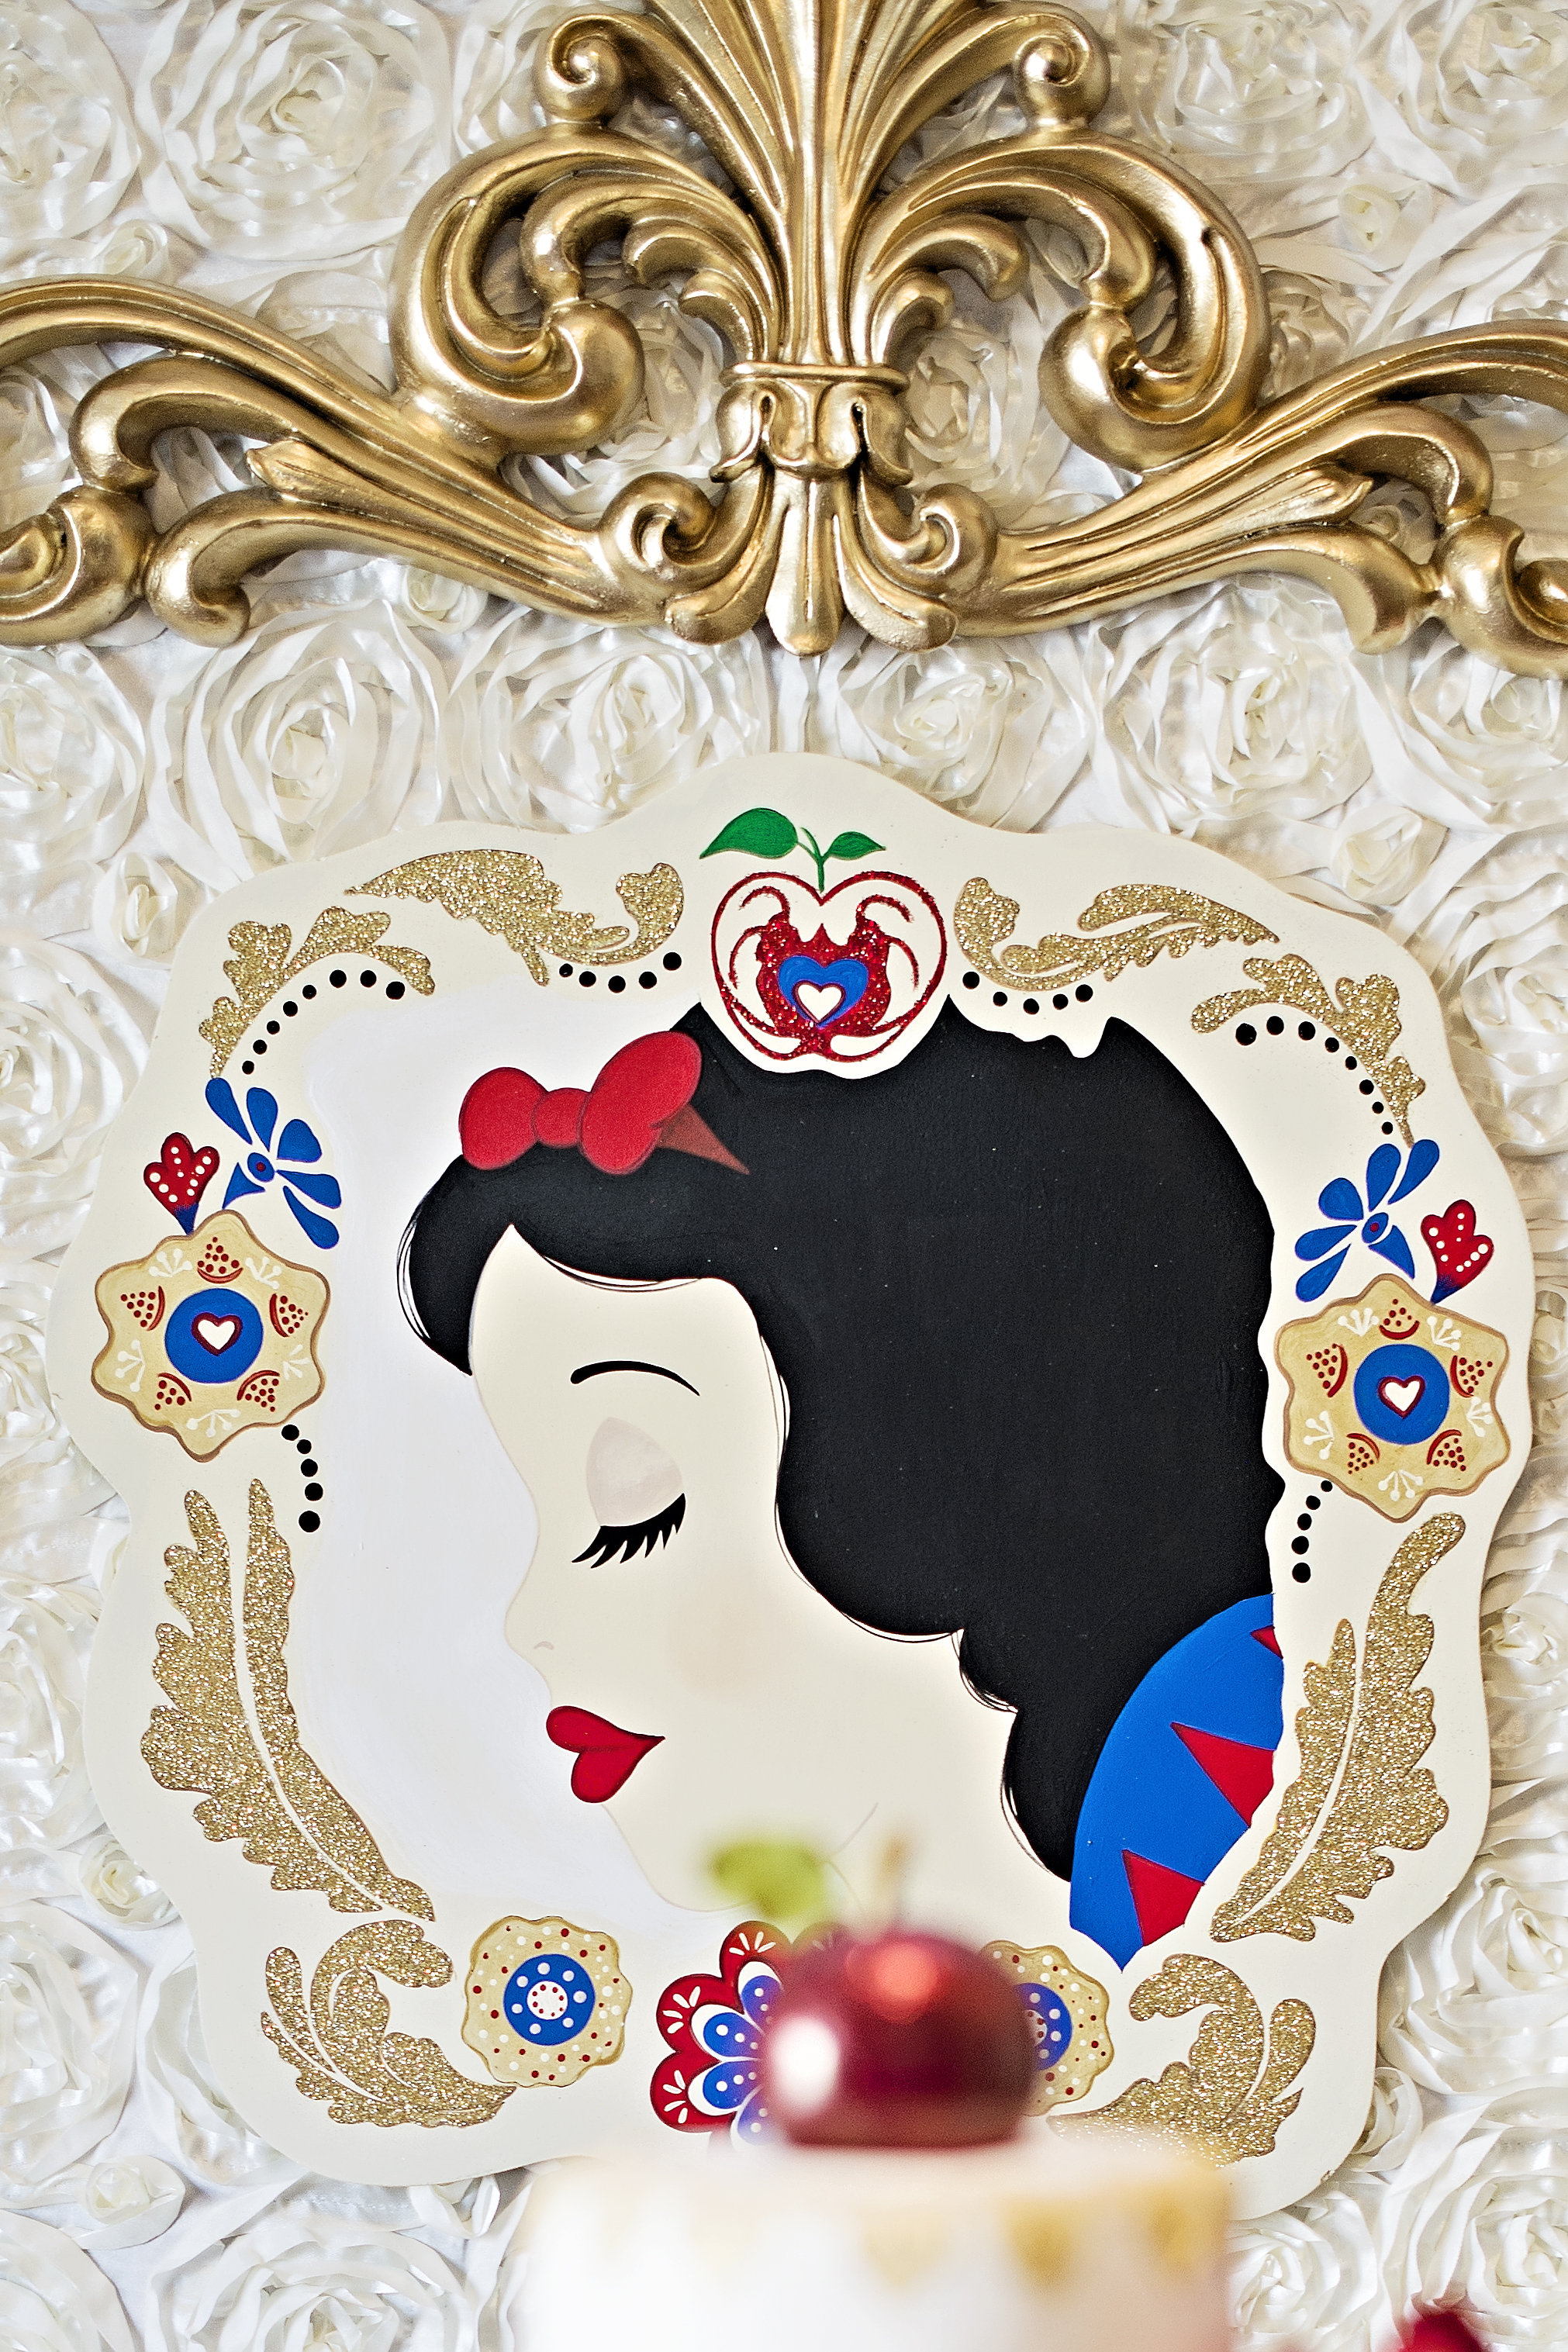 Snow White Party Backdrop Portrait